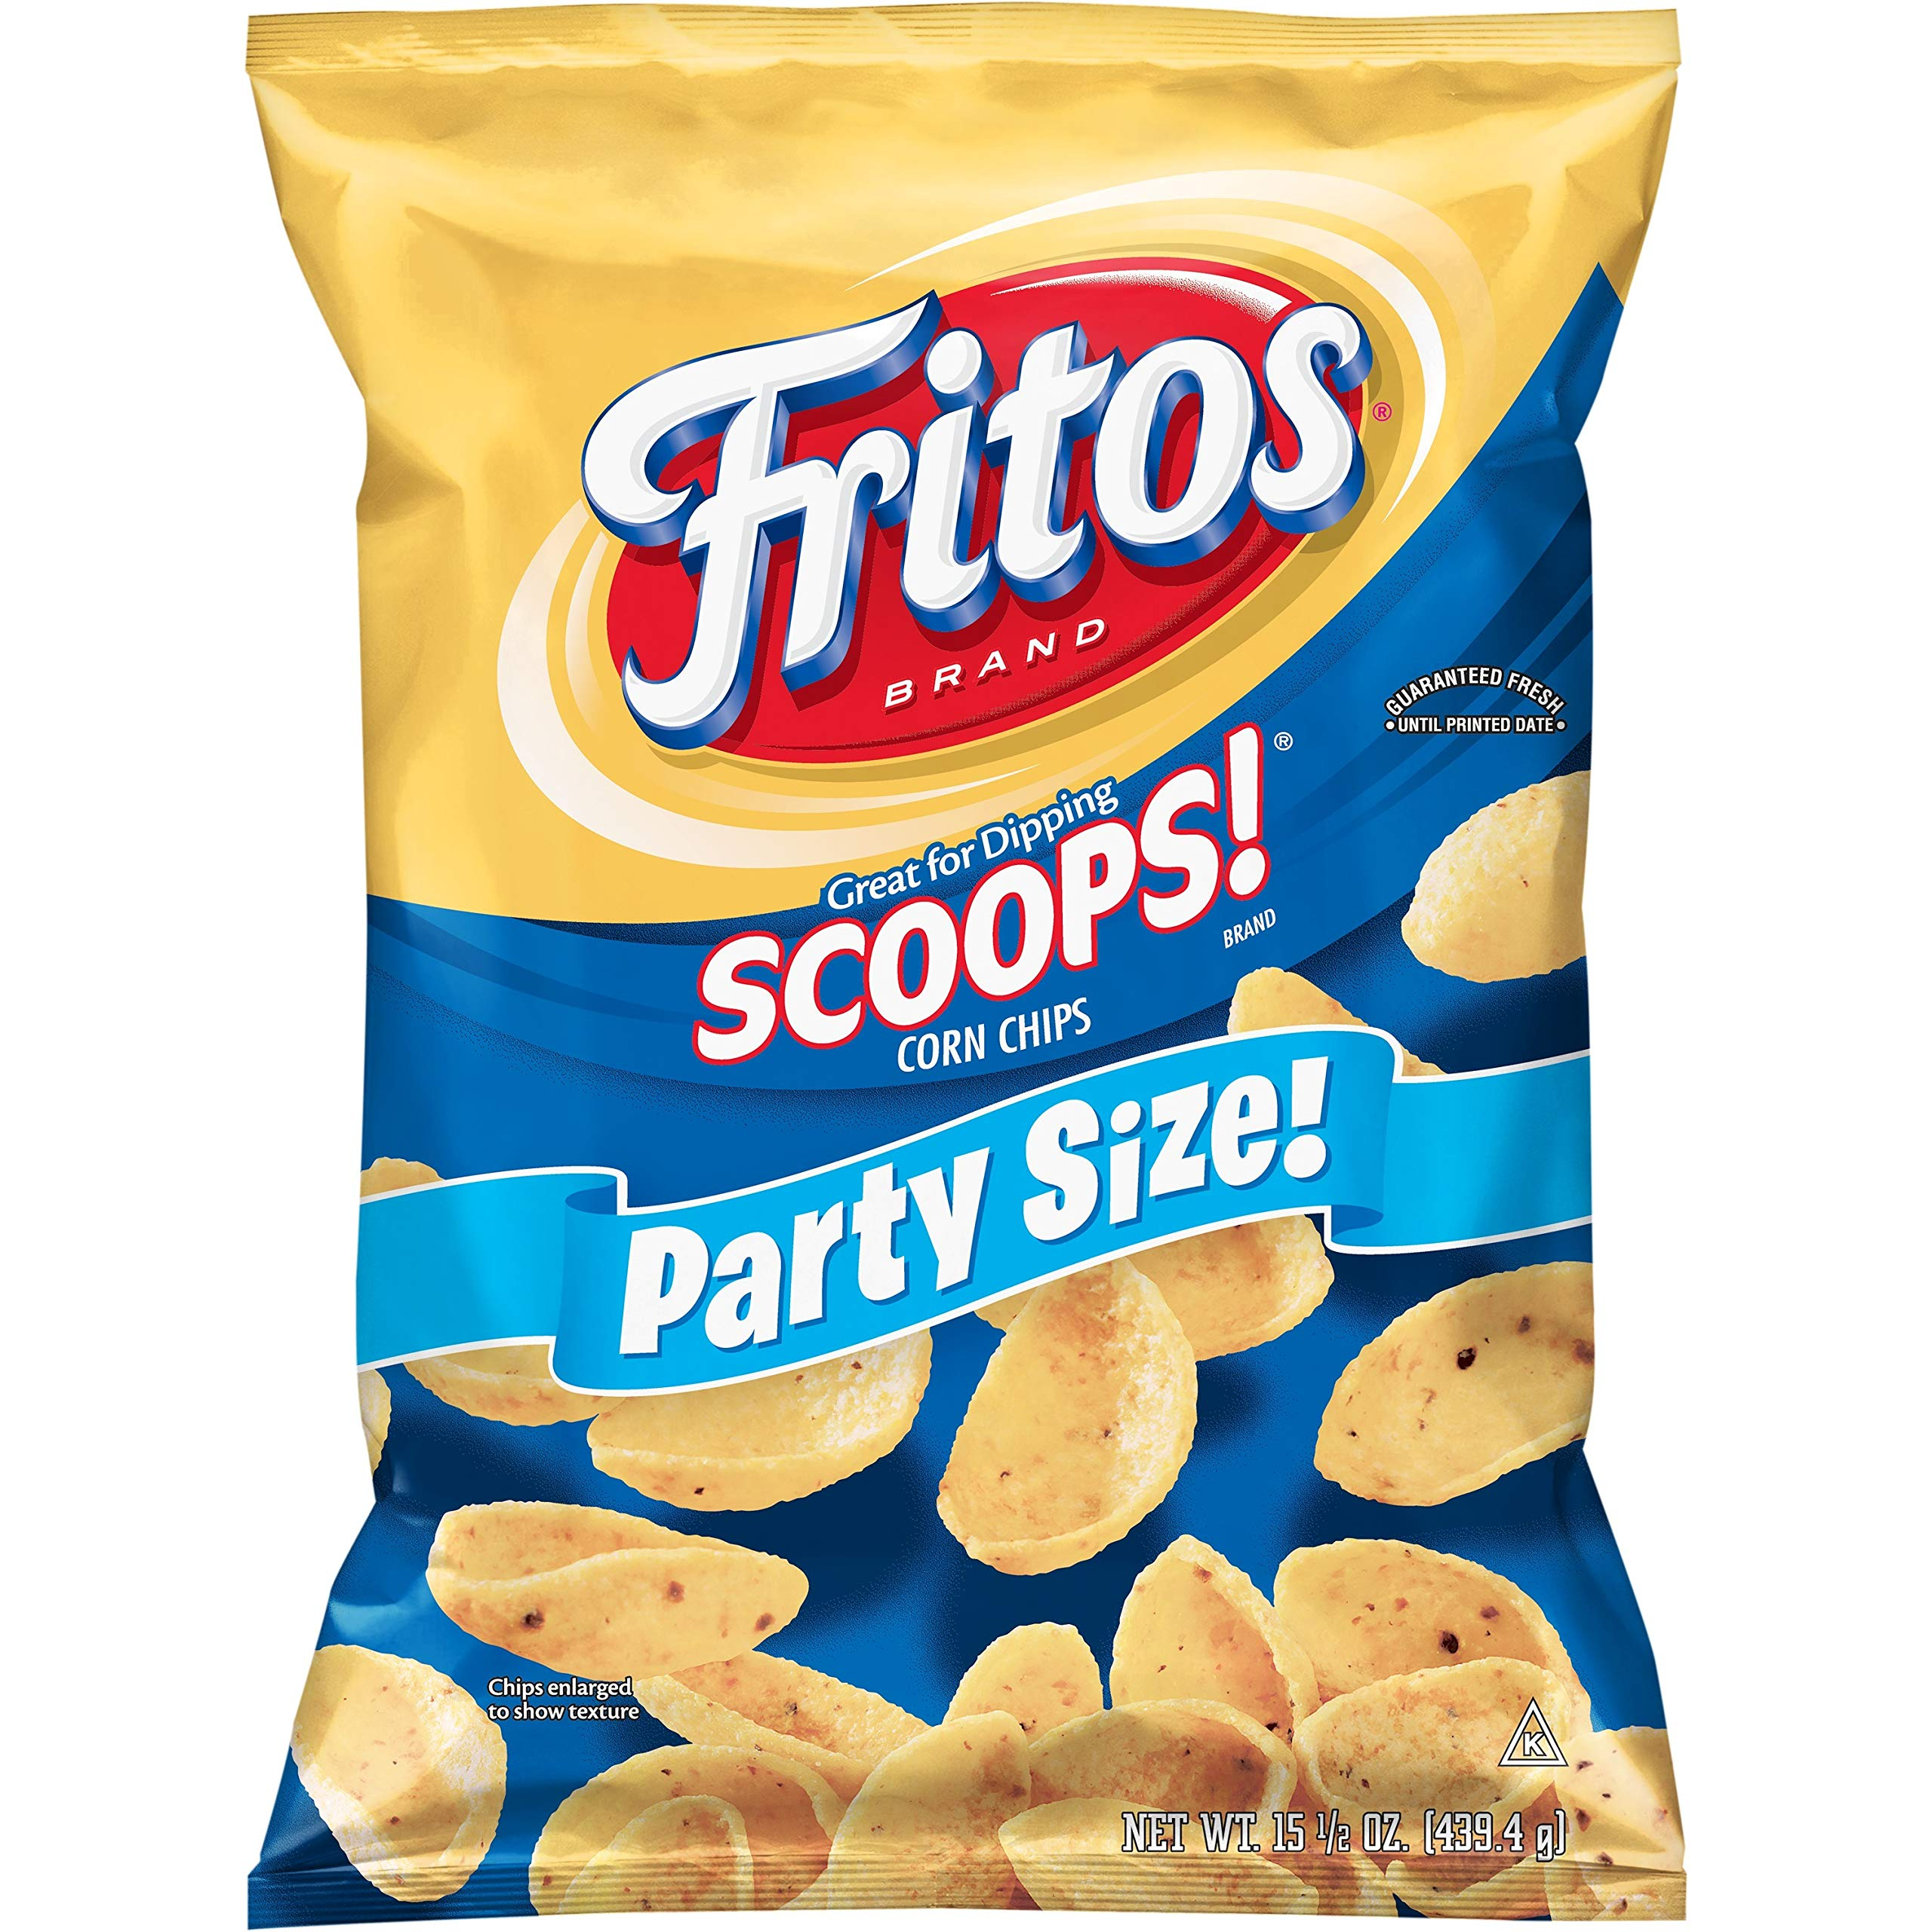 Fritos Scoops! Original Corn Chips, Party Size!, 15.5 Ounce